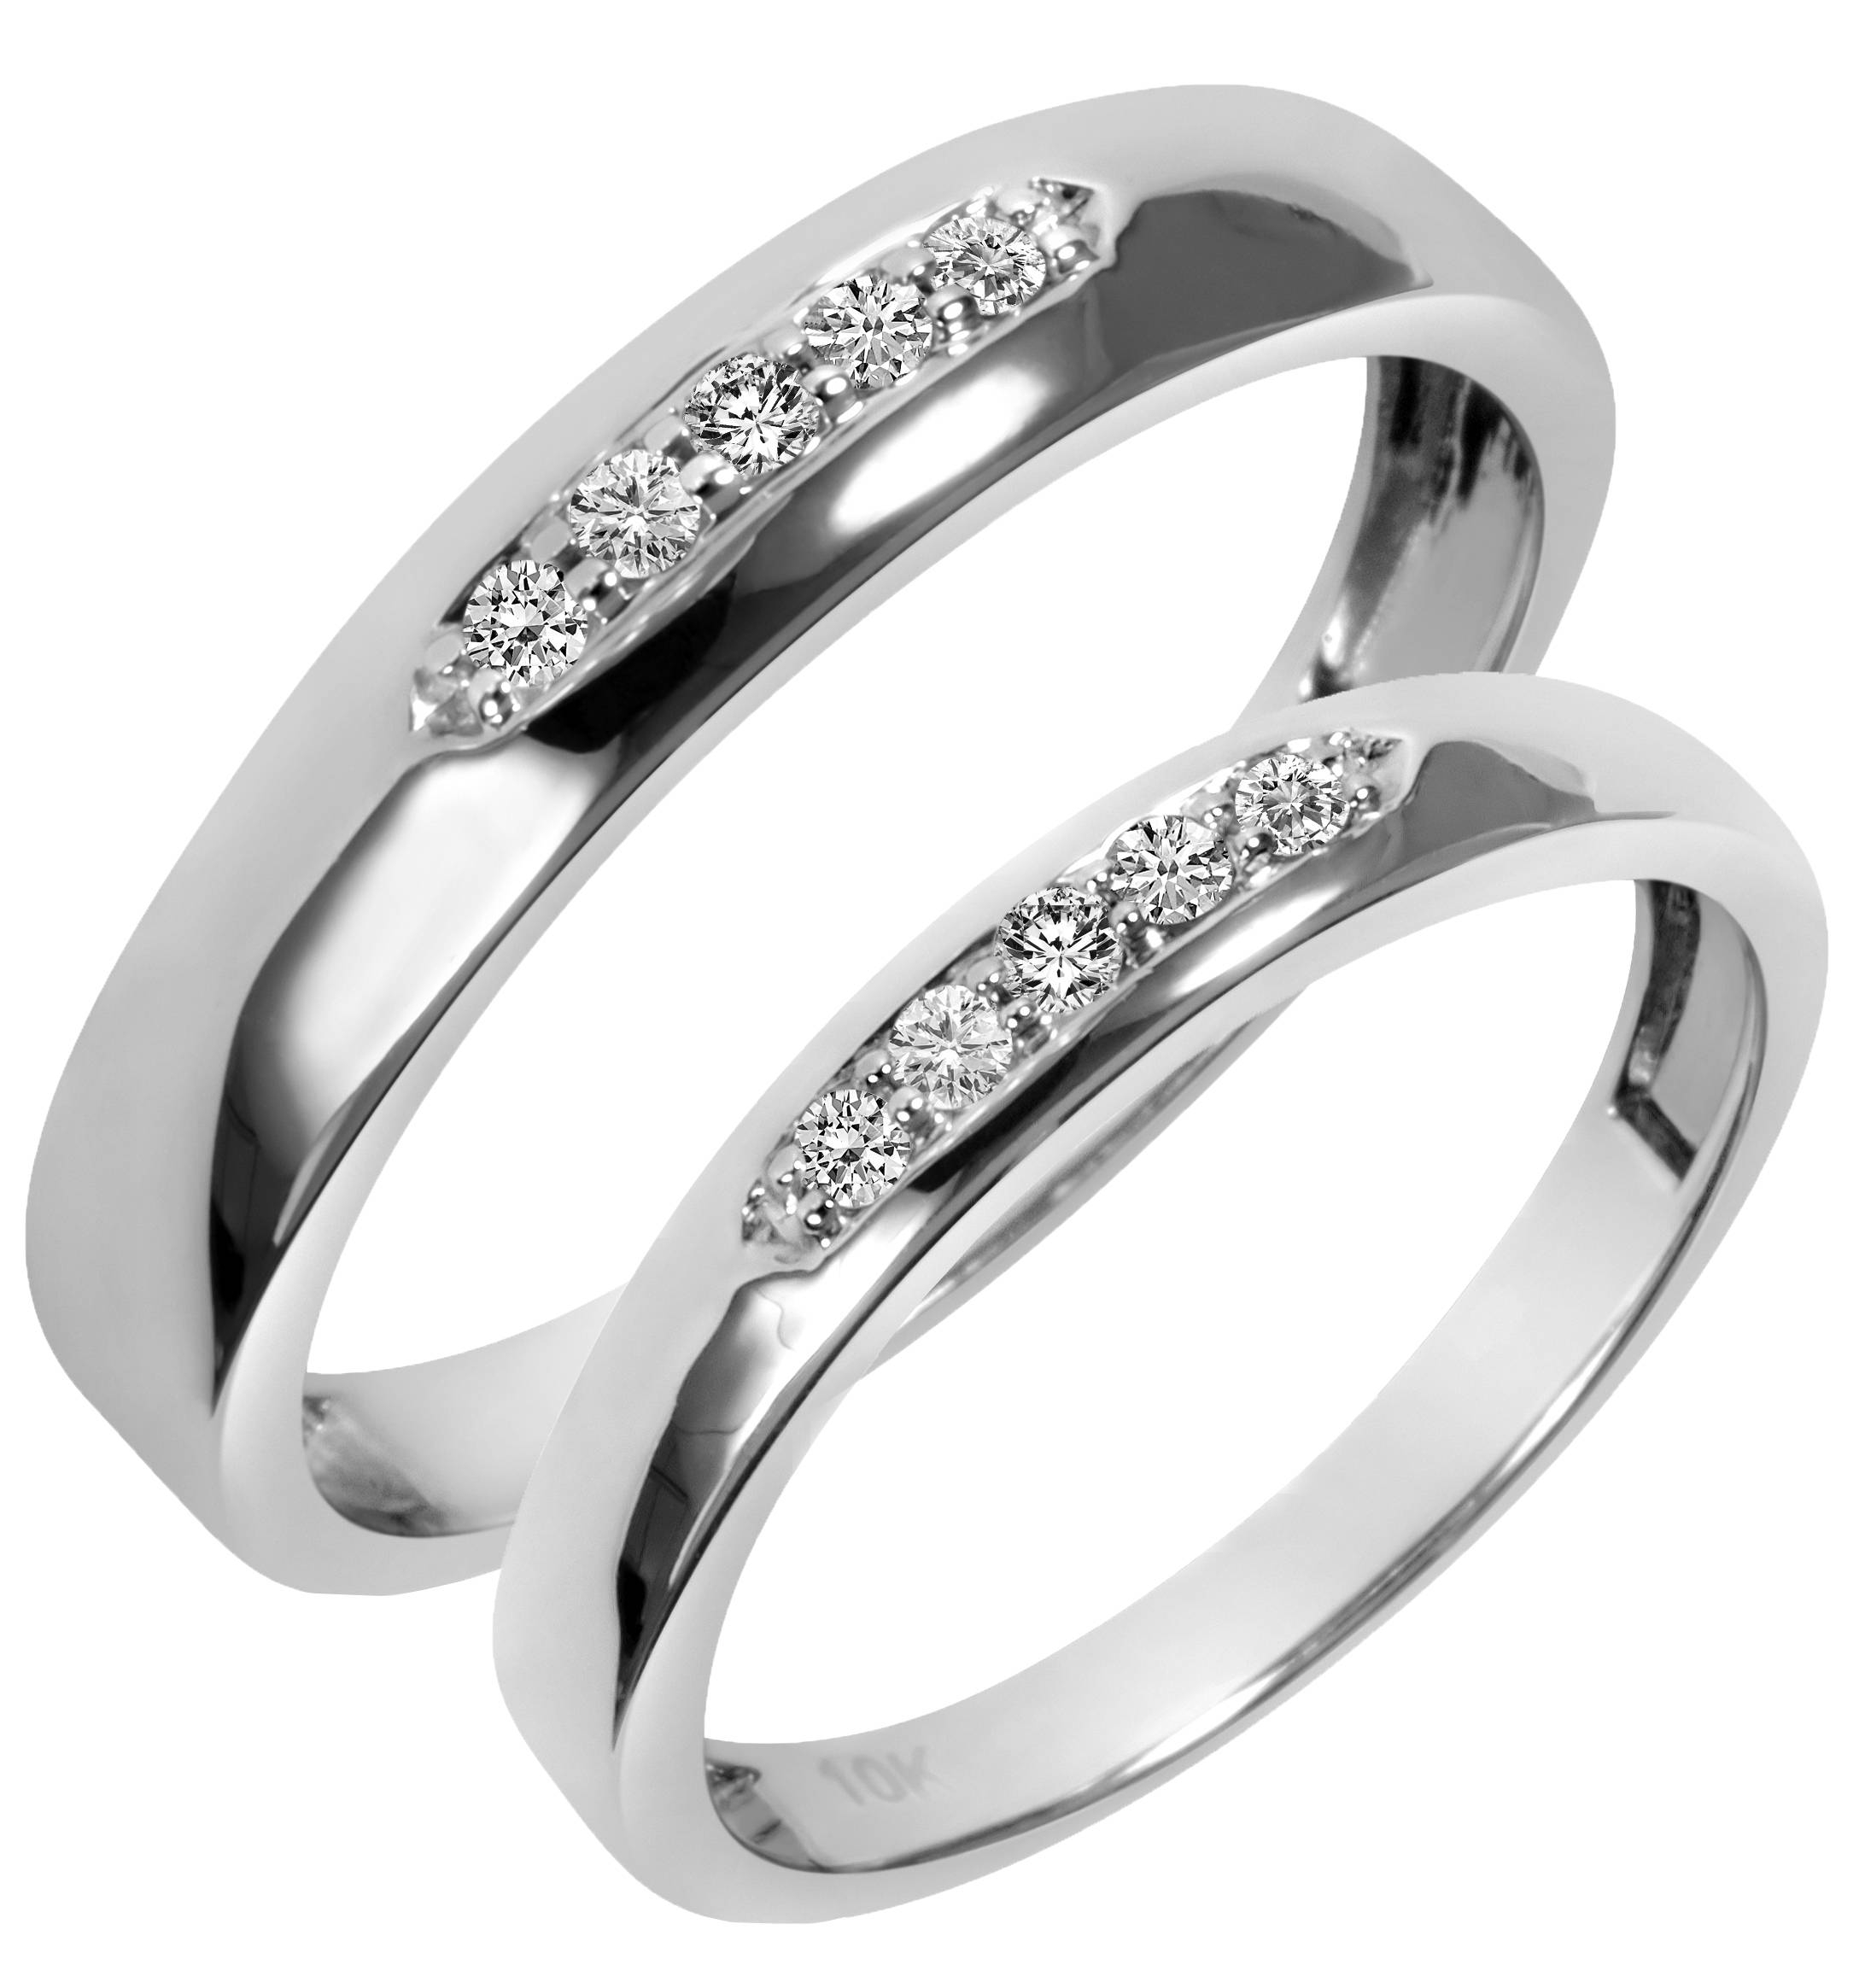 1/5 Carat T.w. Diamond His And Hers Wedding Band Set 14K White Gold Regarding White Gold Wedding Bands Sets (Gallery 2 of 15)